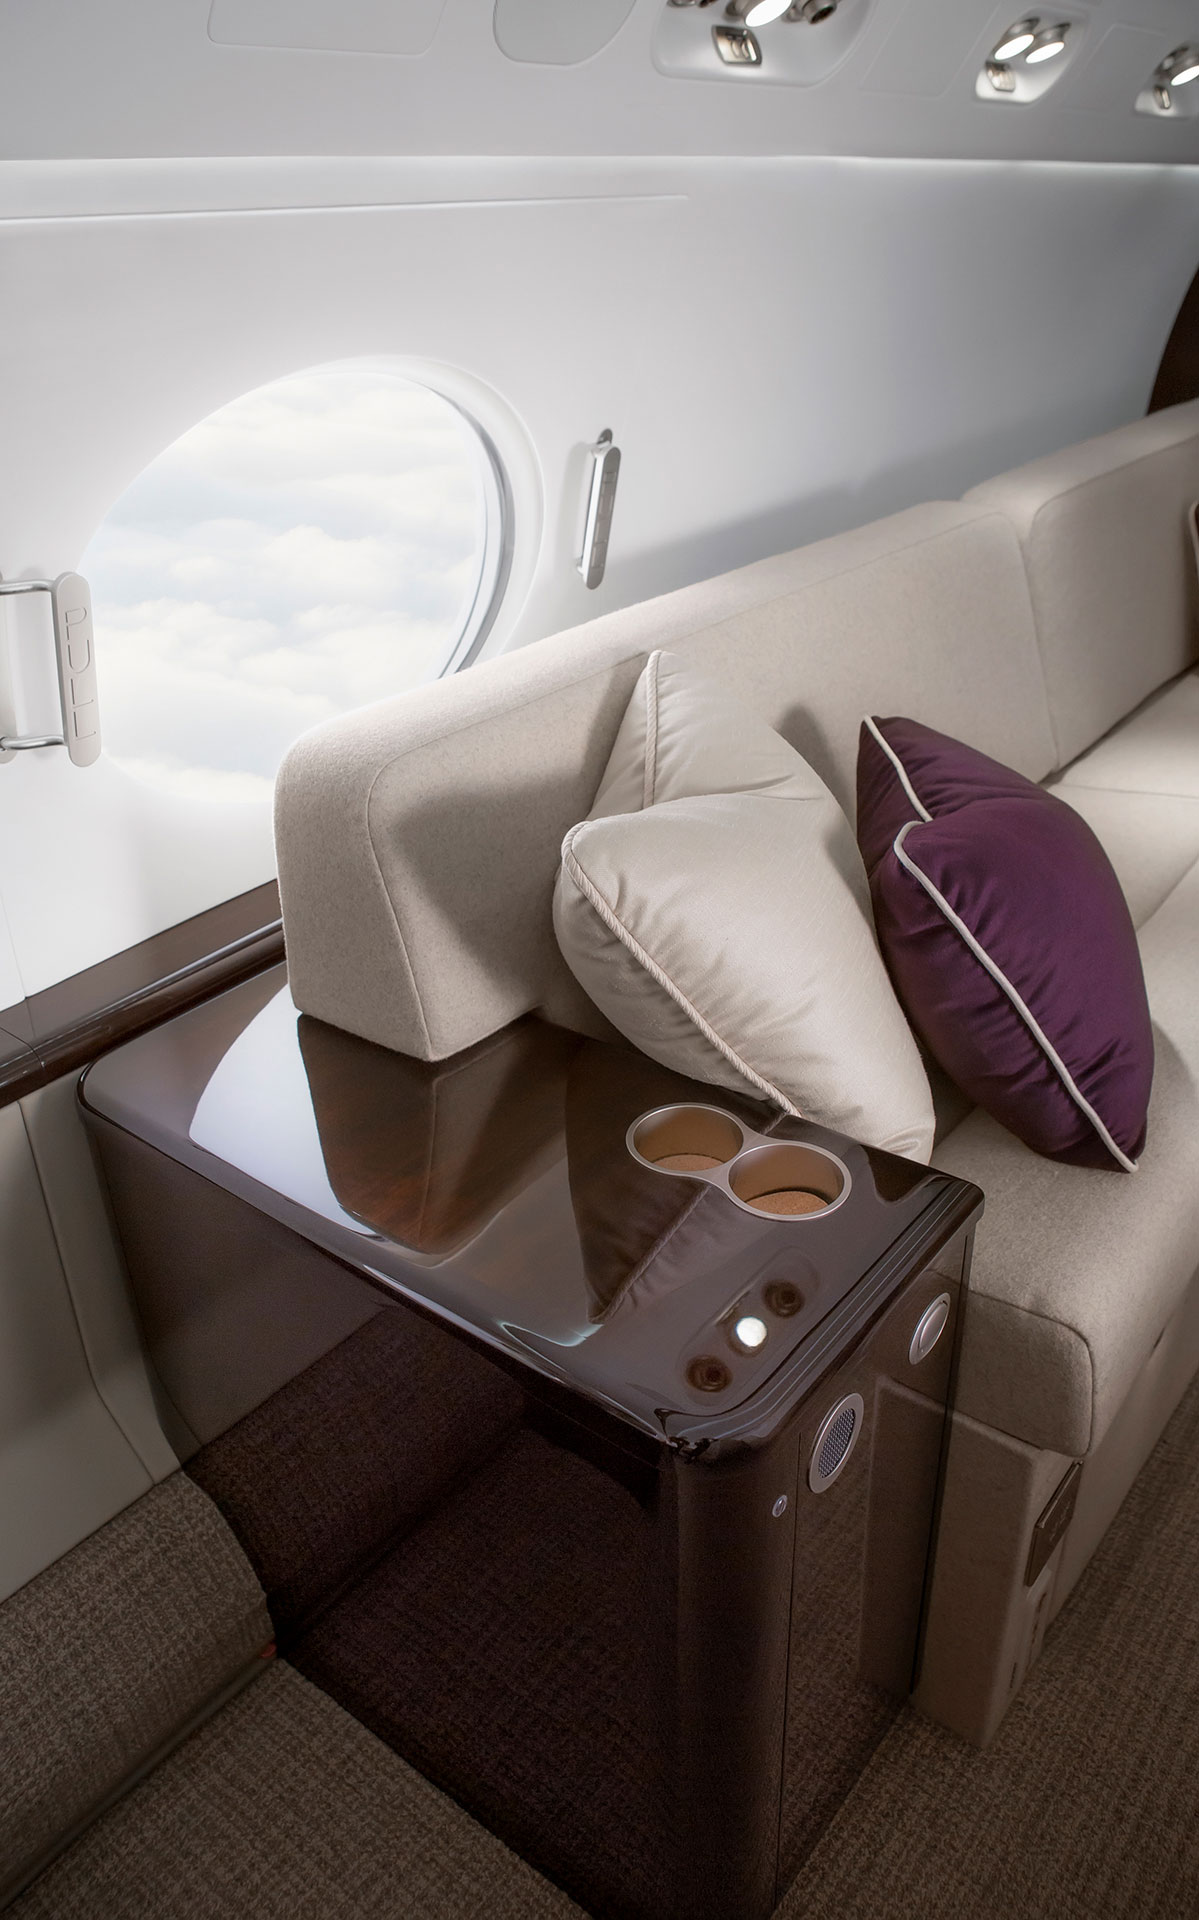 Leather couch in an aircraft interior